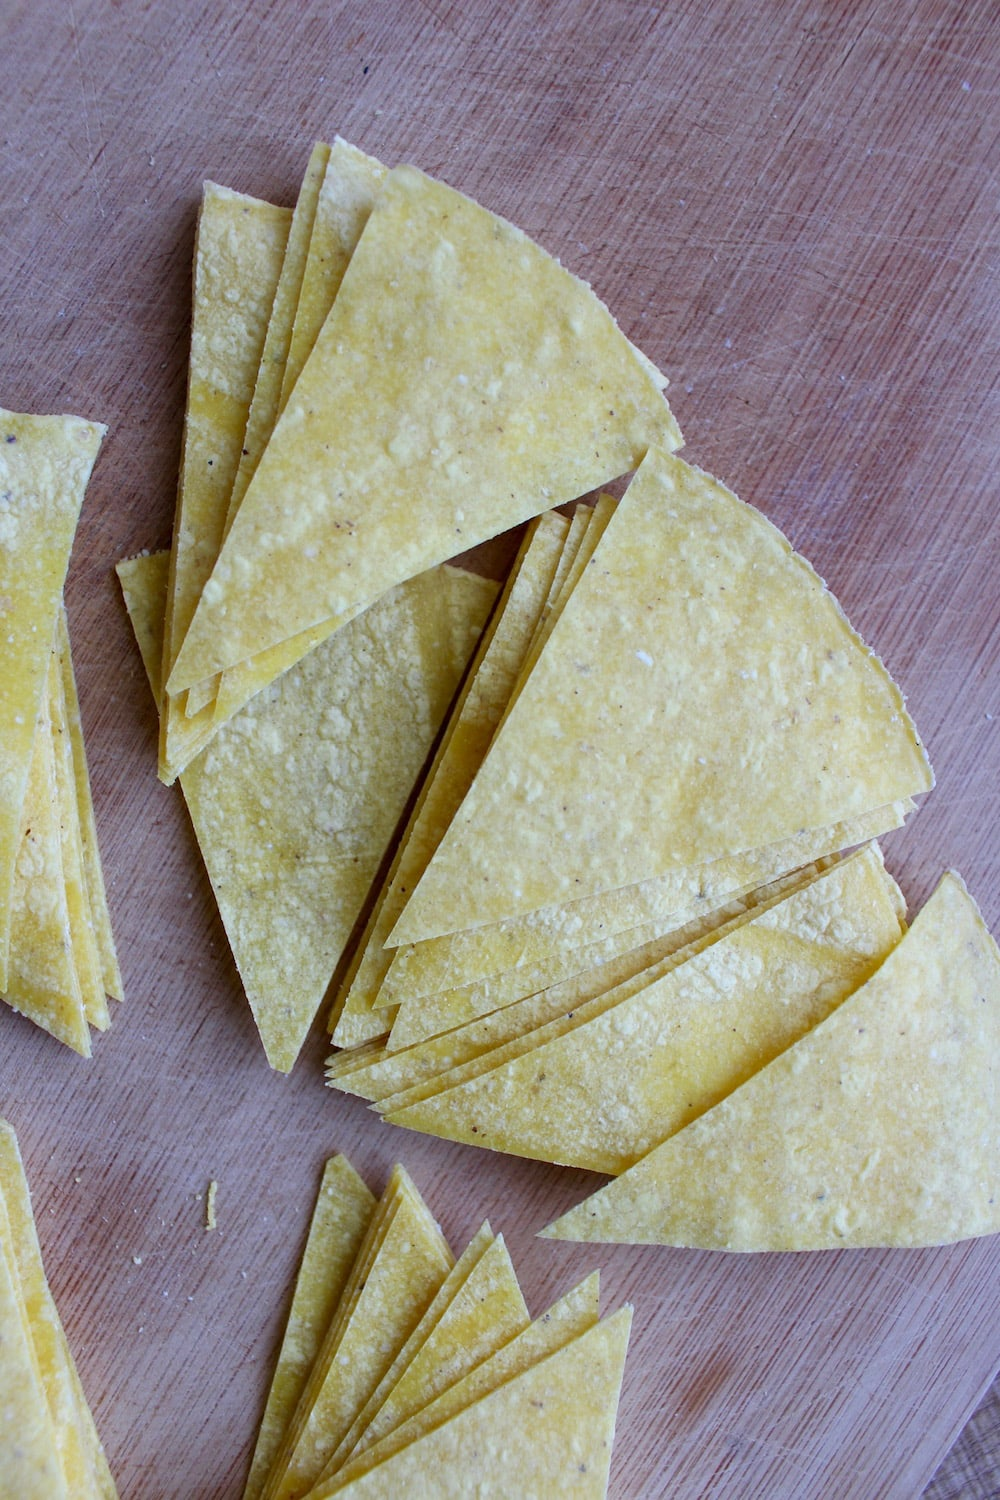 Corn tortillas cut into chip shape